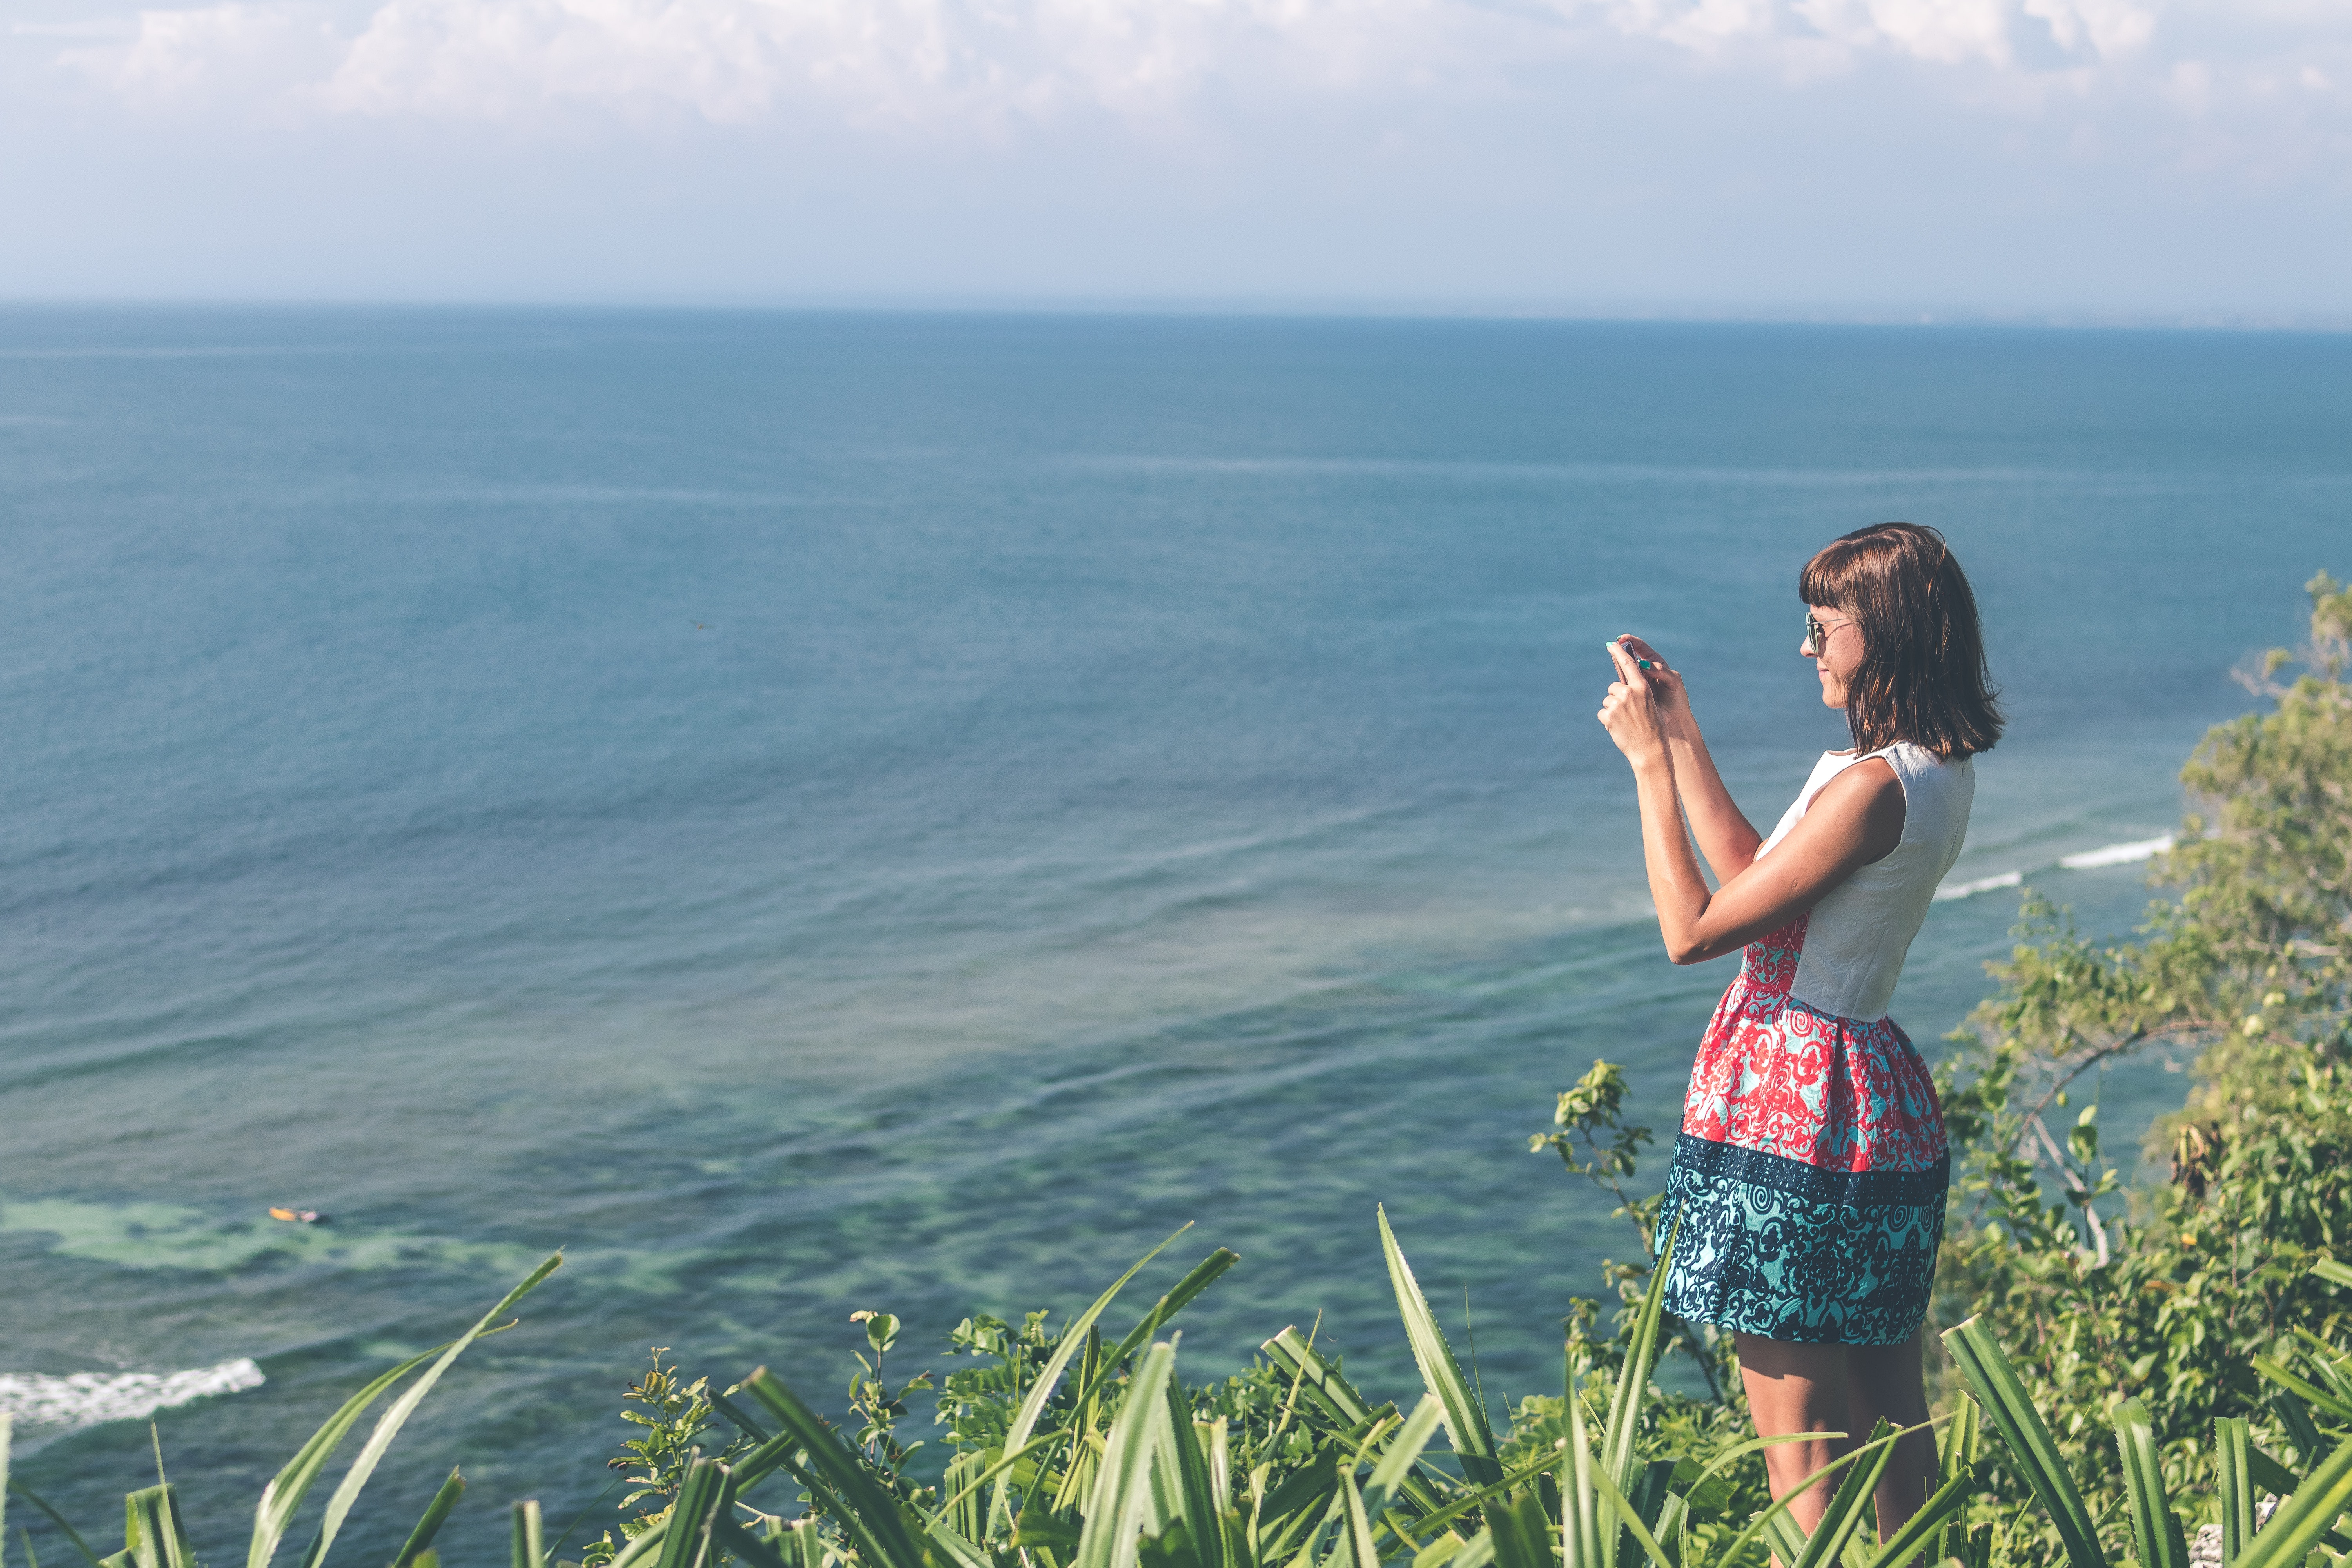 Woman Standing White and Blue Floral Dress Holding Smartphone in Grass Area, Camera, Sea, Woman, White, HQ Photo